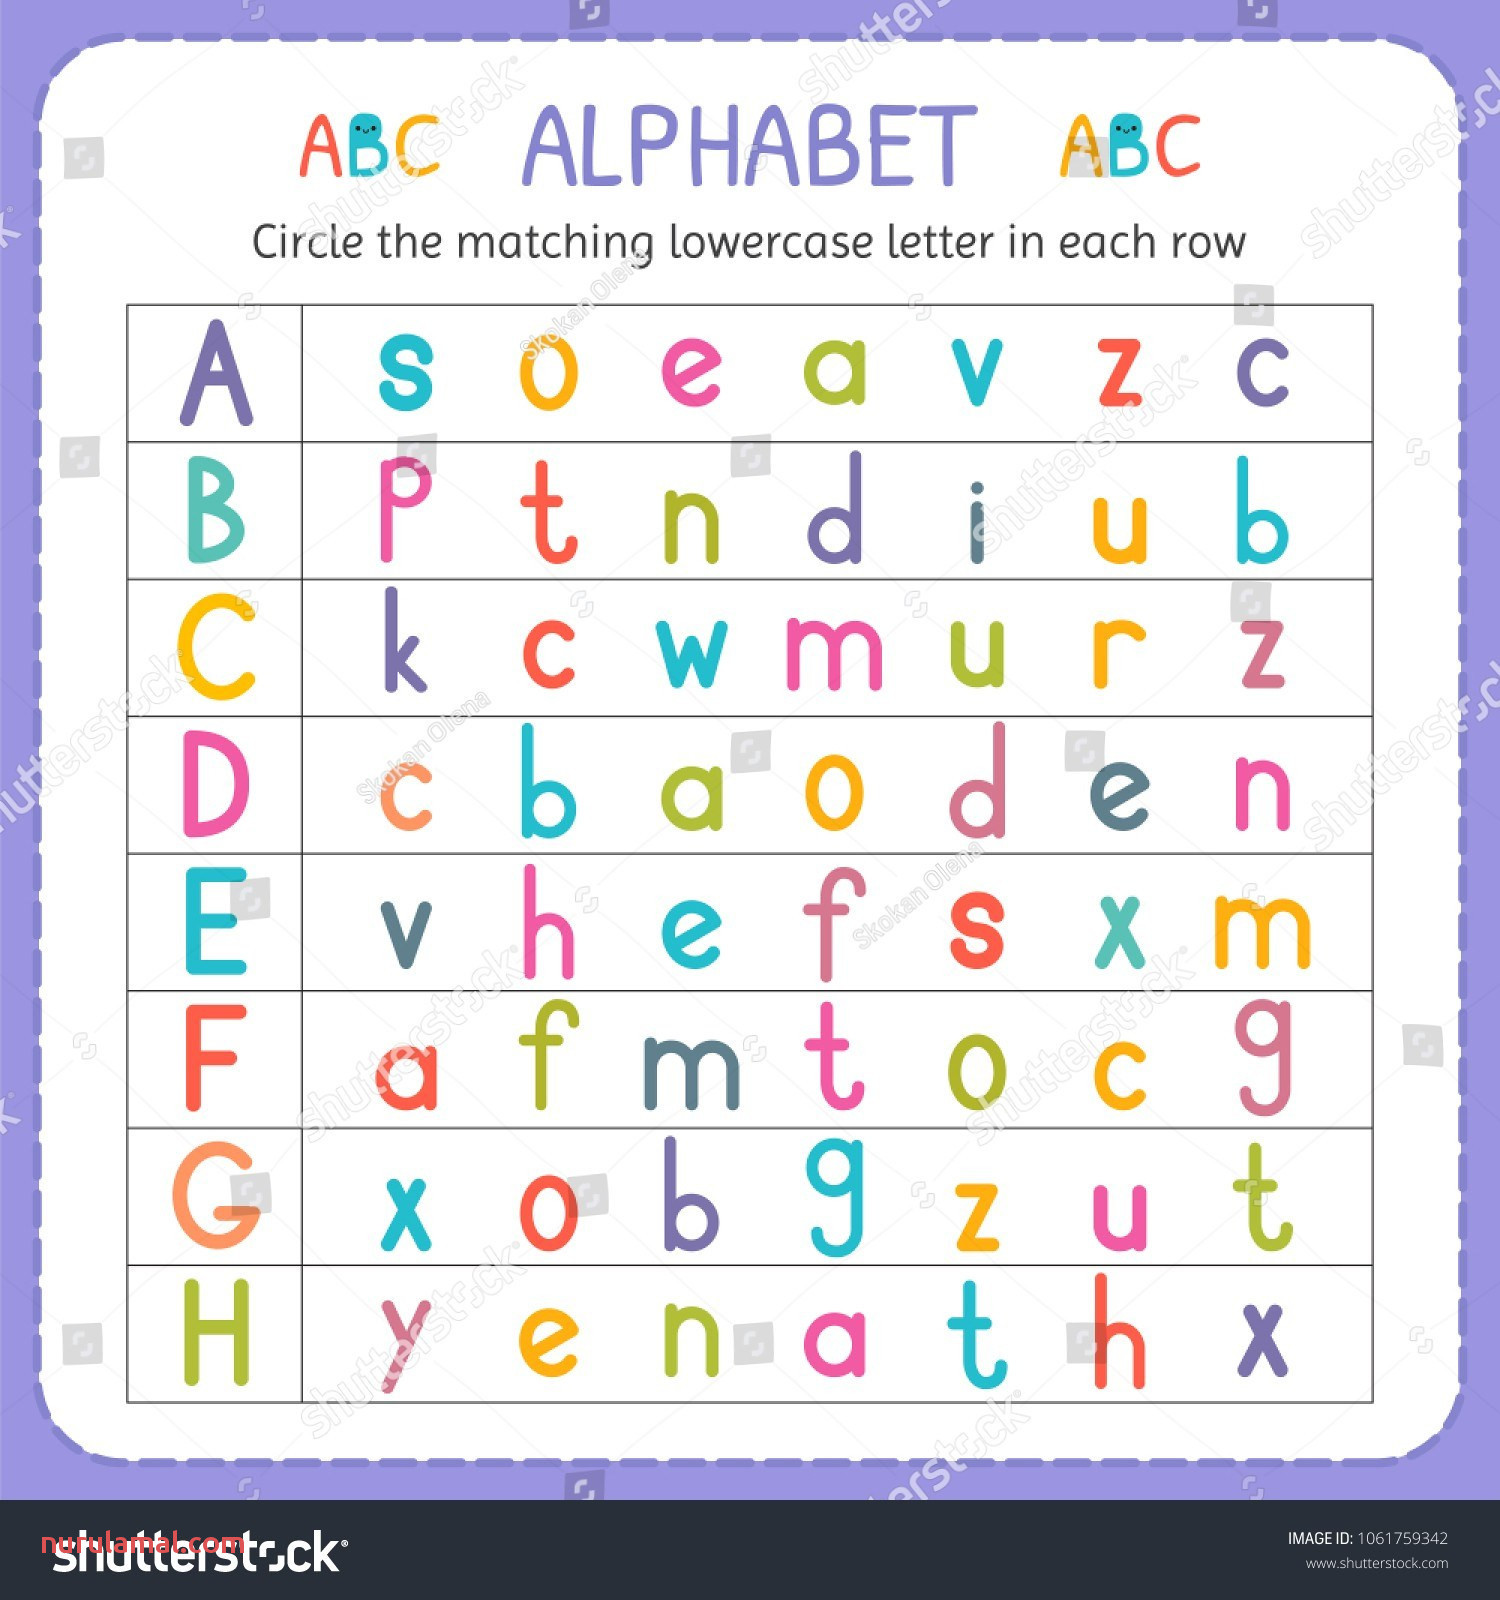 abc mouse letter m as letter h worksheet abc mouse printable worksheets beautiful science of abc mouse letter m